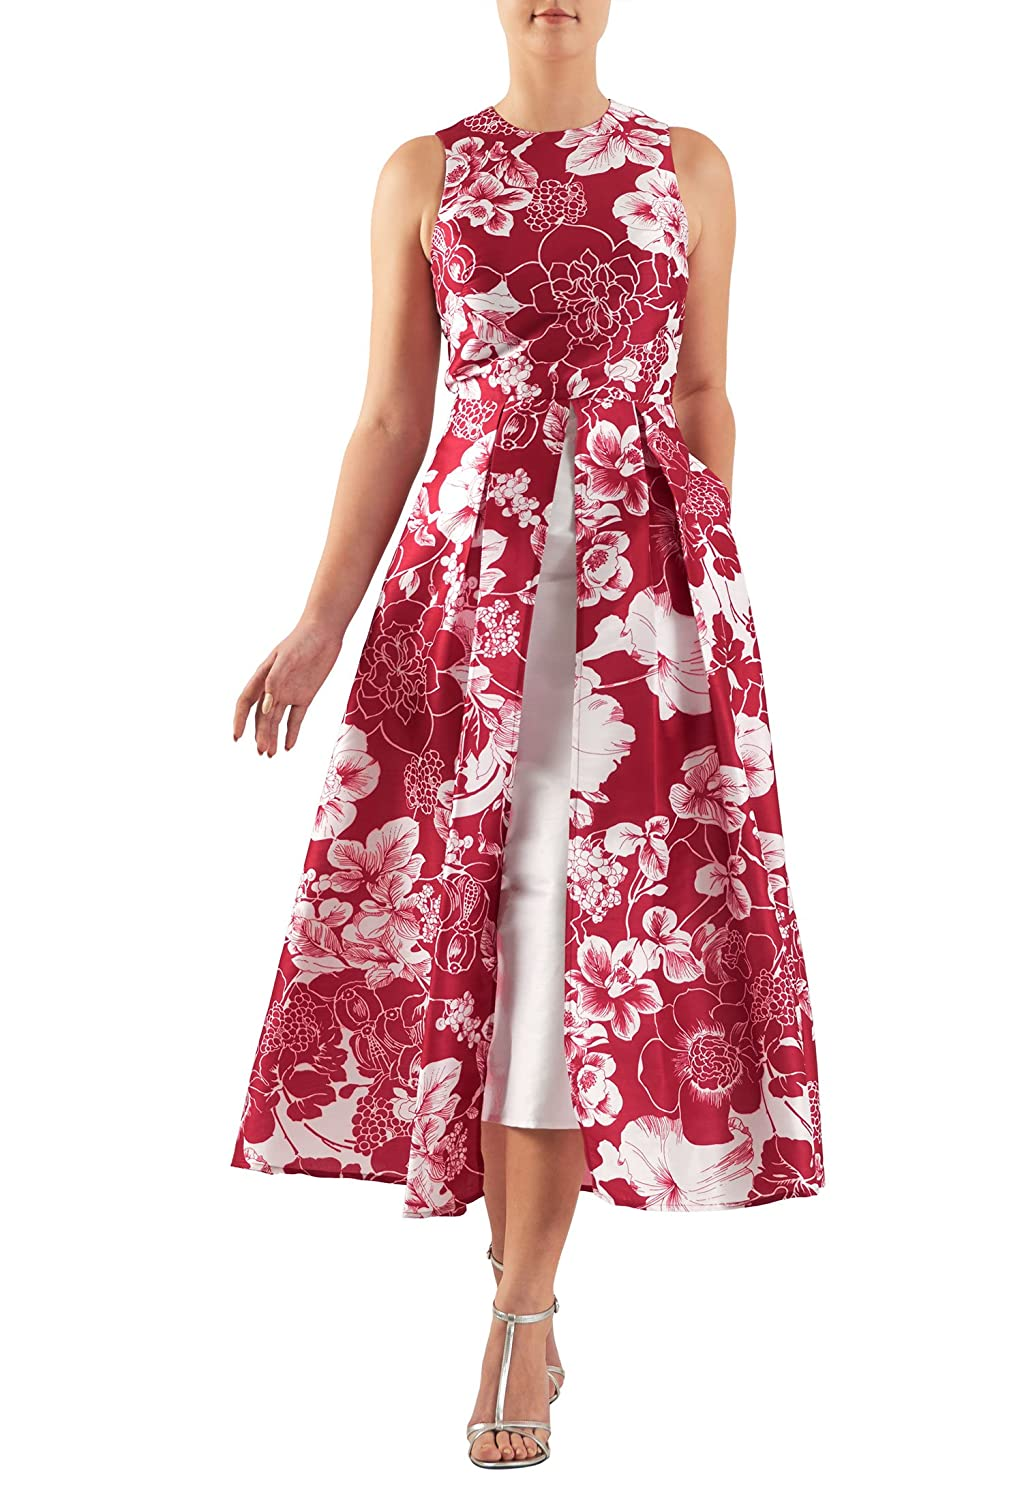 1960s Style Dresses- Retro Inspired Fashion Hostess- Floral print dupioni inset front dress $66.95 AT vintagedancer.com